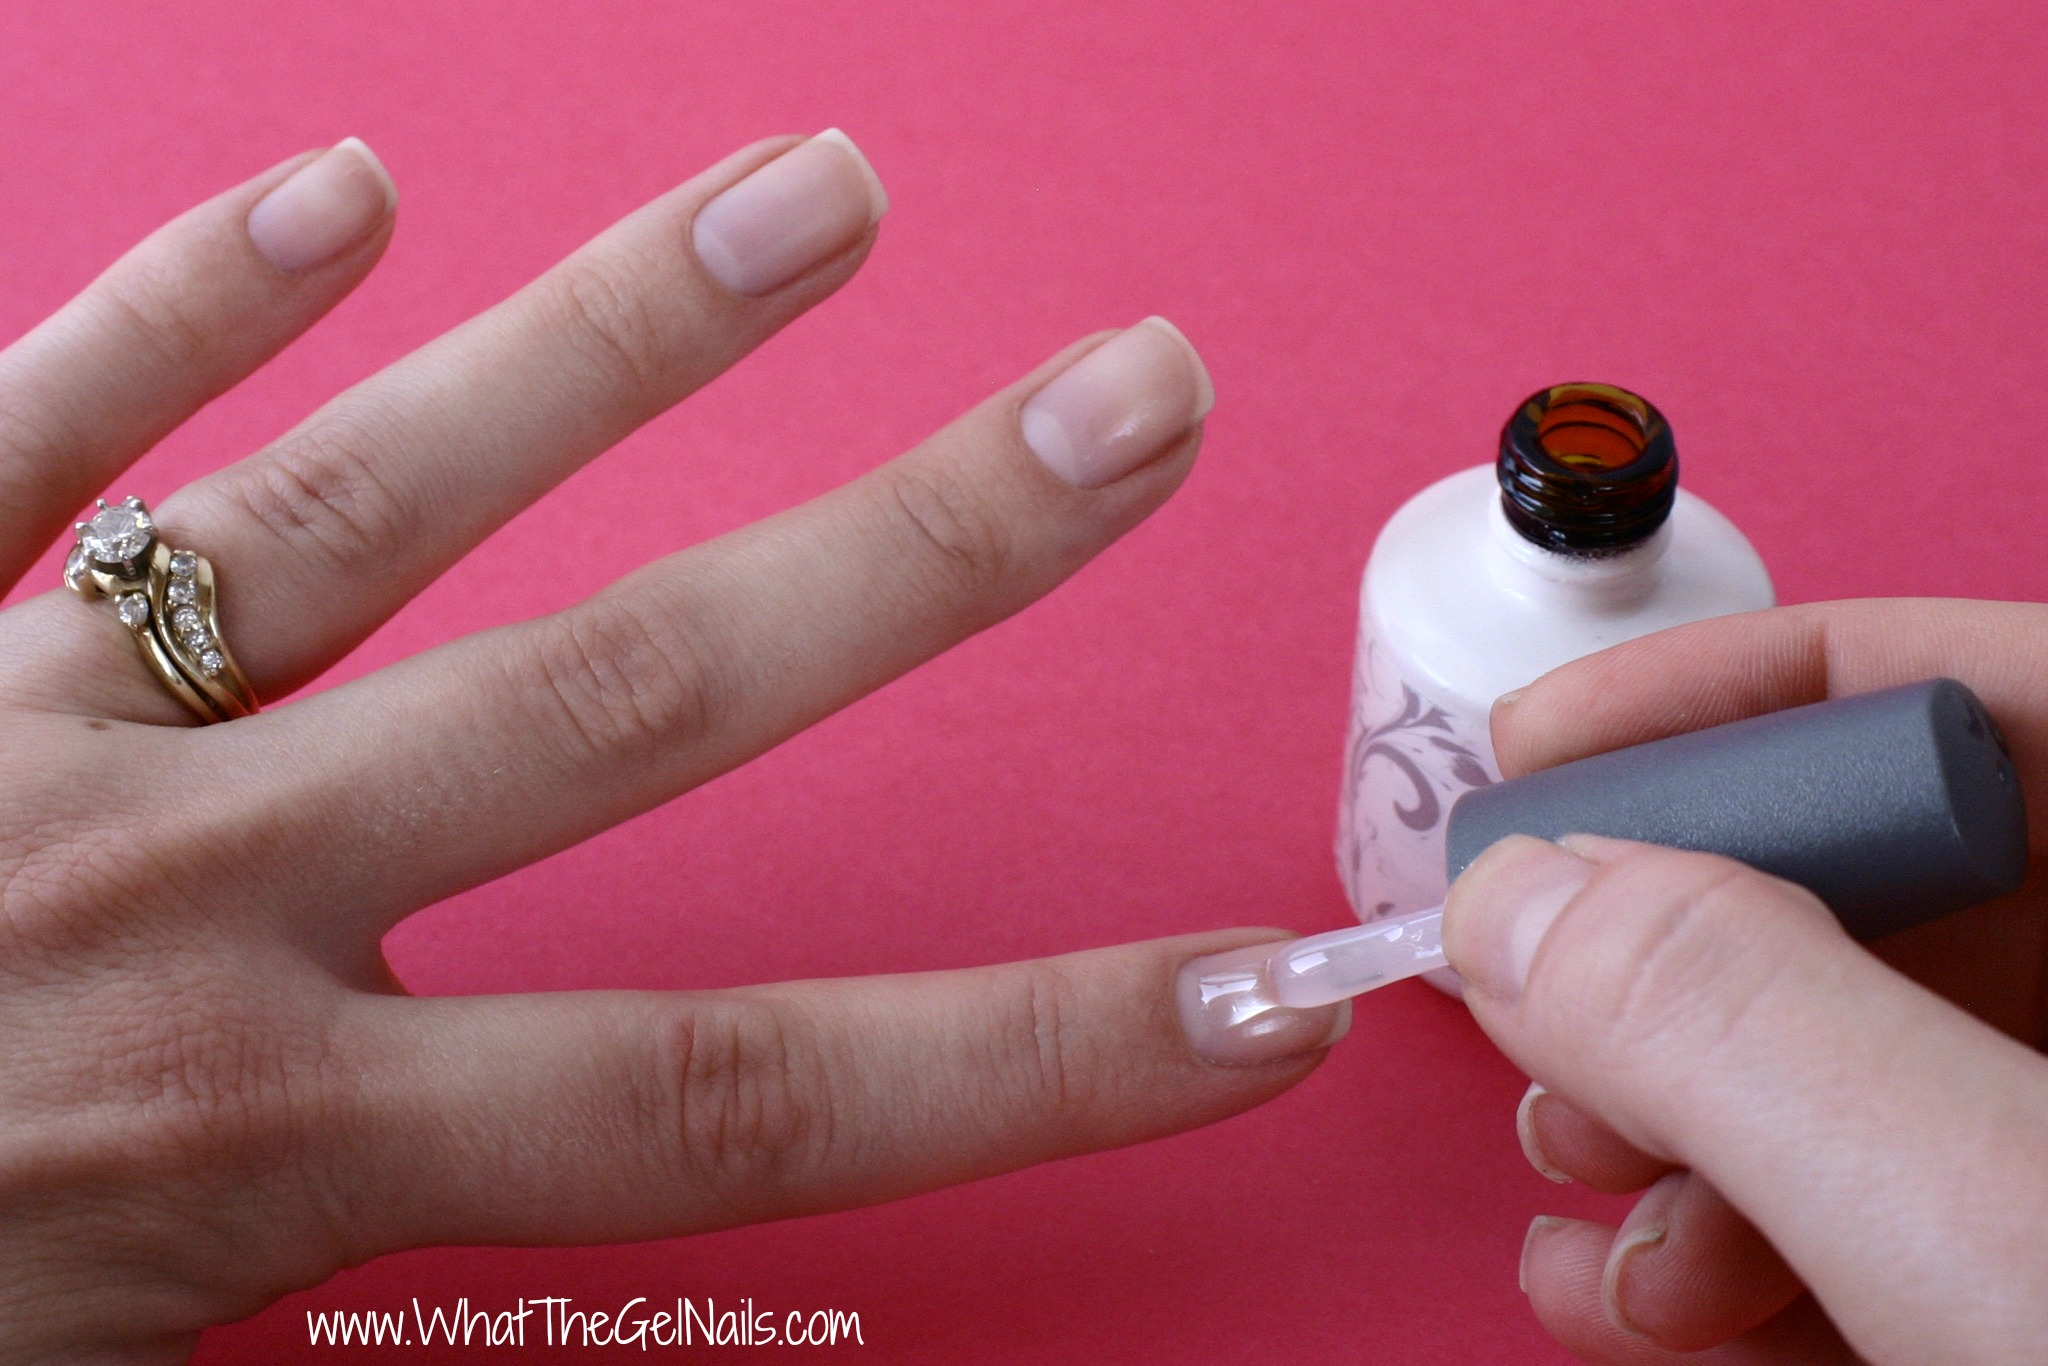 cvs gel nails base photo - 1